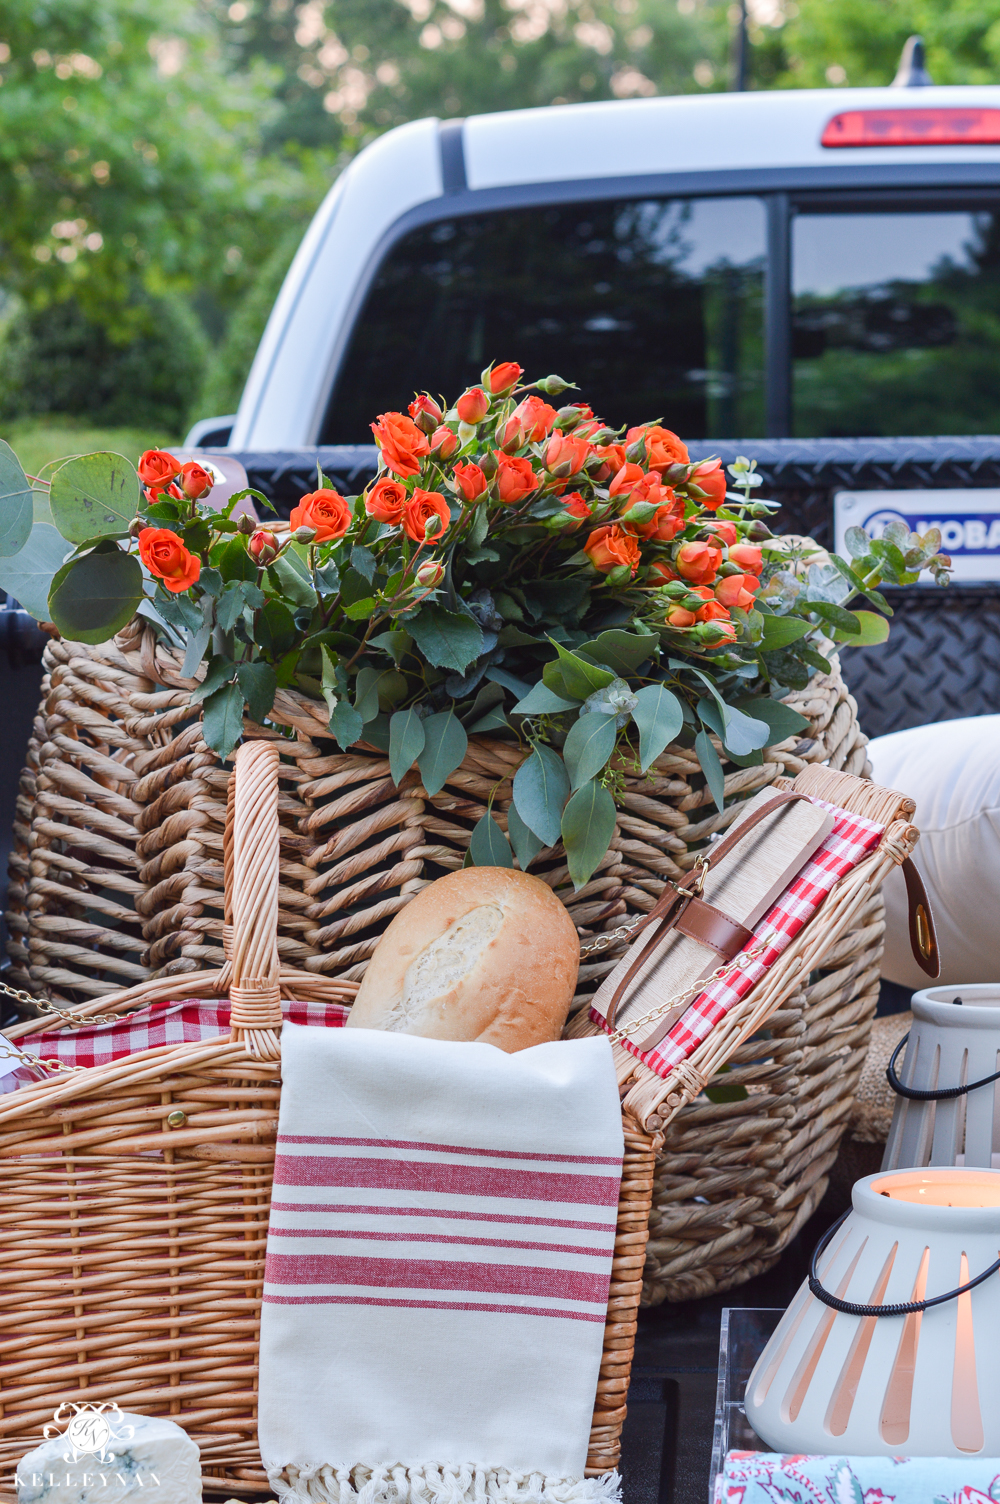 Picnic And Tailgate Ideas And Setup Picnic Basket With Flowers For Fancy Tailgate